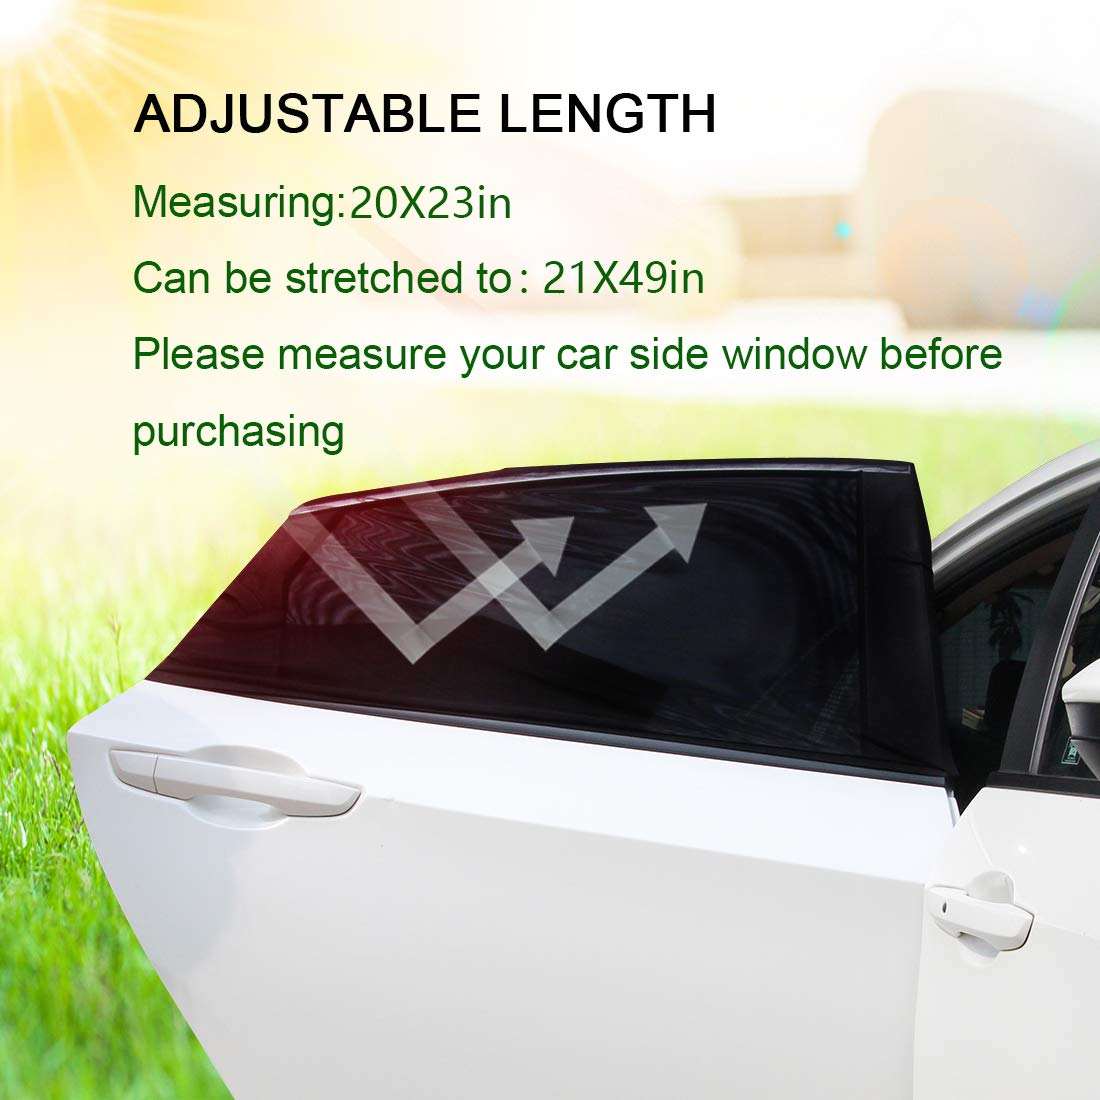 XL Side Rear Window Sun Shade Stronger Stretchability 2Pack Rear Sunshade 2X Car Sun Window Shade Anti-Glare and UV Rays Protection for Baby Kids Adult SUV Minivans and Large Sedans Car Camping